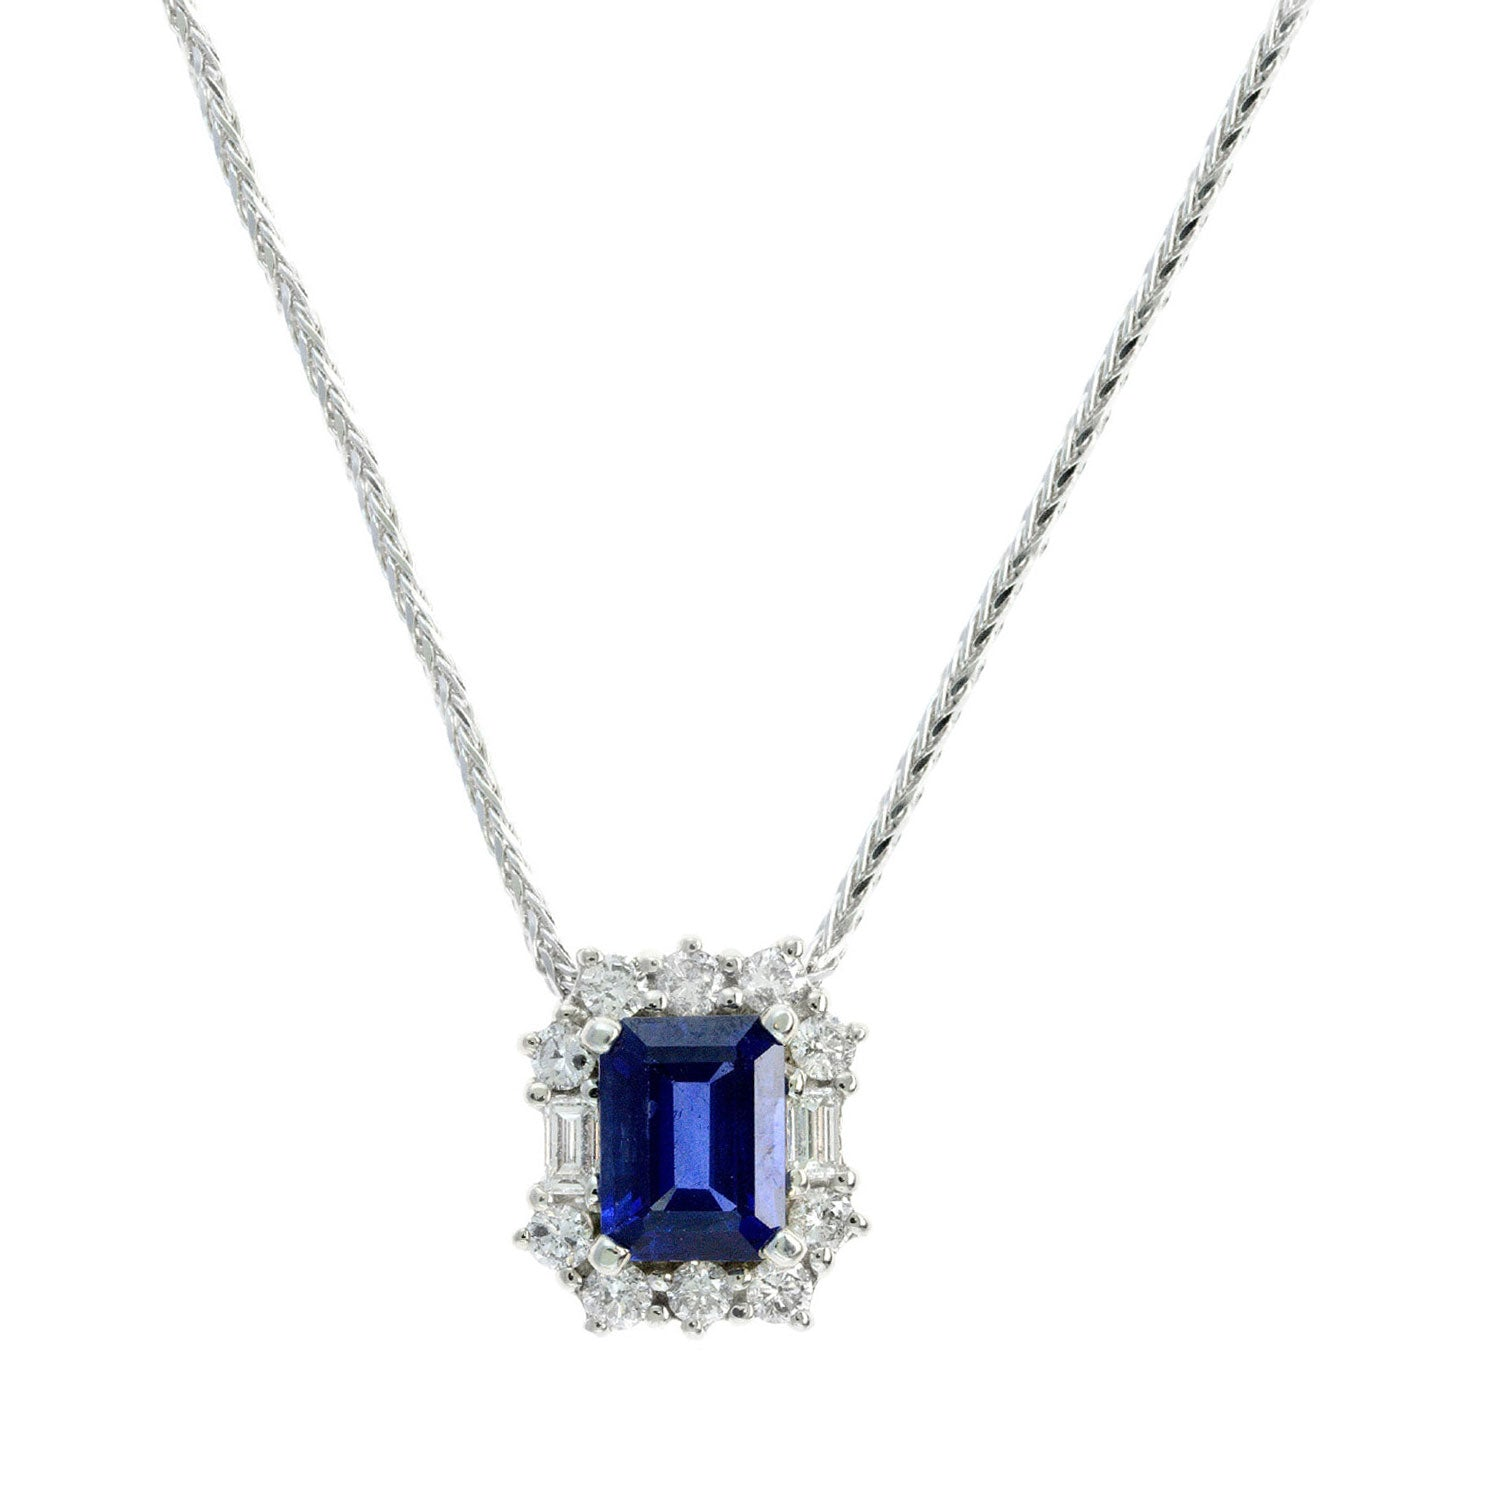 Rectangular Sapphire and Diamond Halo Necklace, 14K White Gold